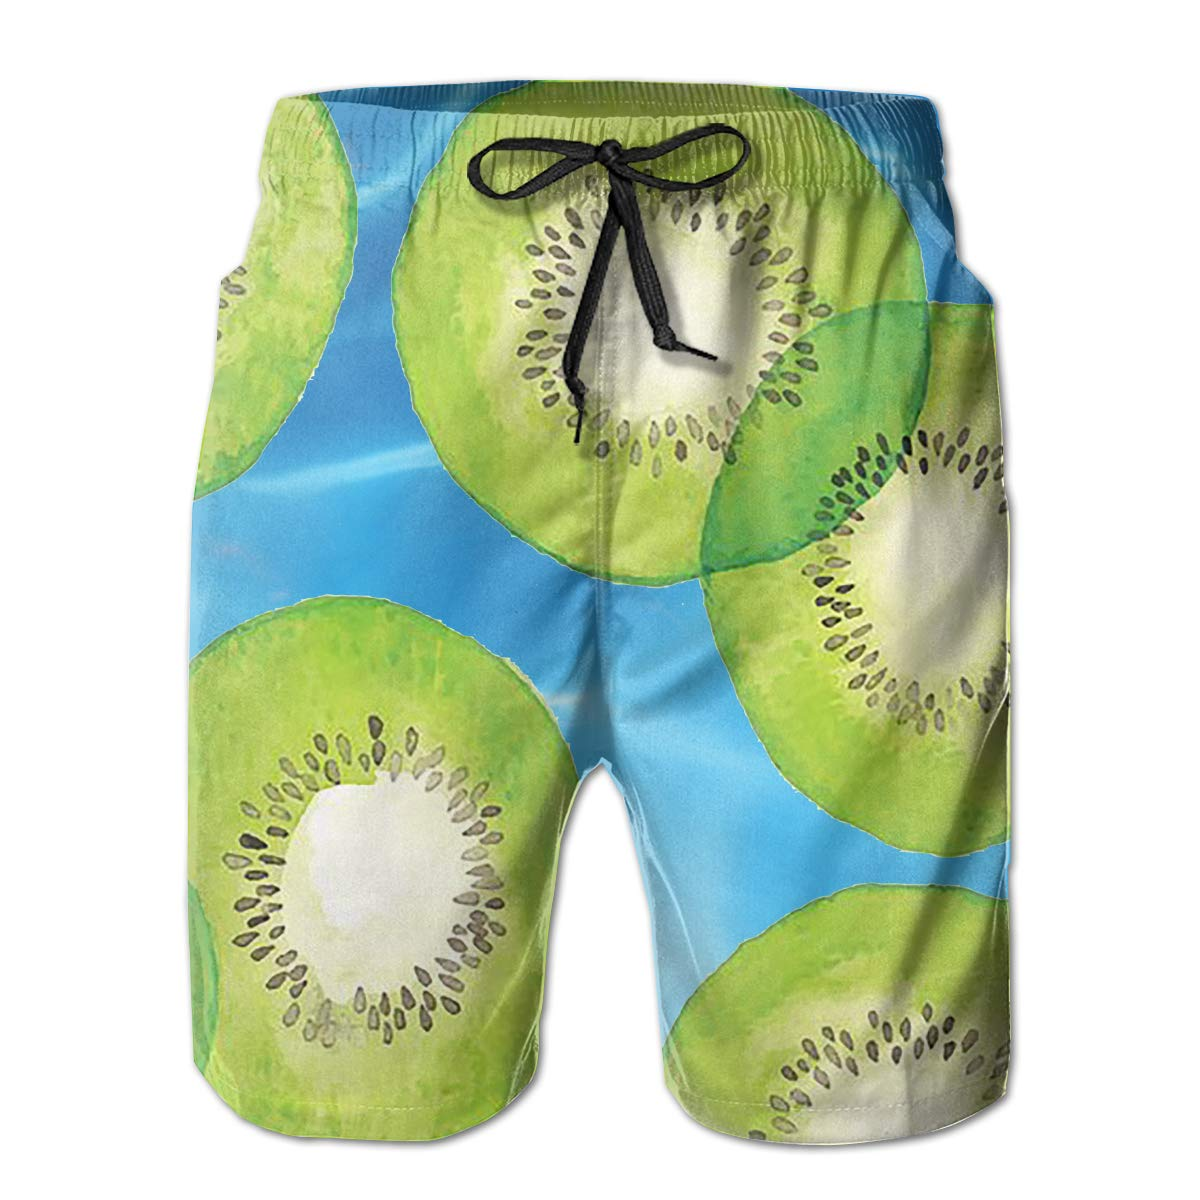 Wexzss Kiwi Funny Summer Quick-Drying Swim Trunks Beach Shorts Cargo Shorts